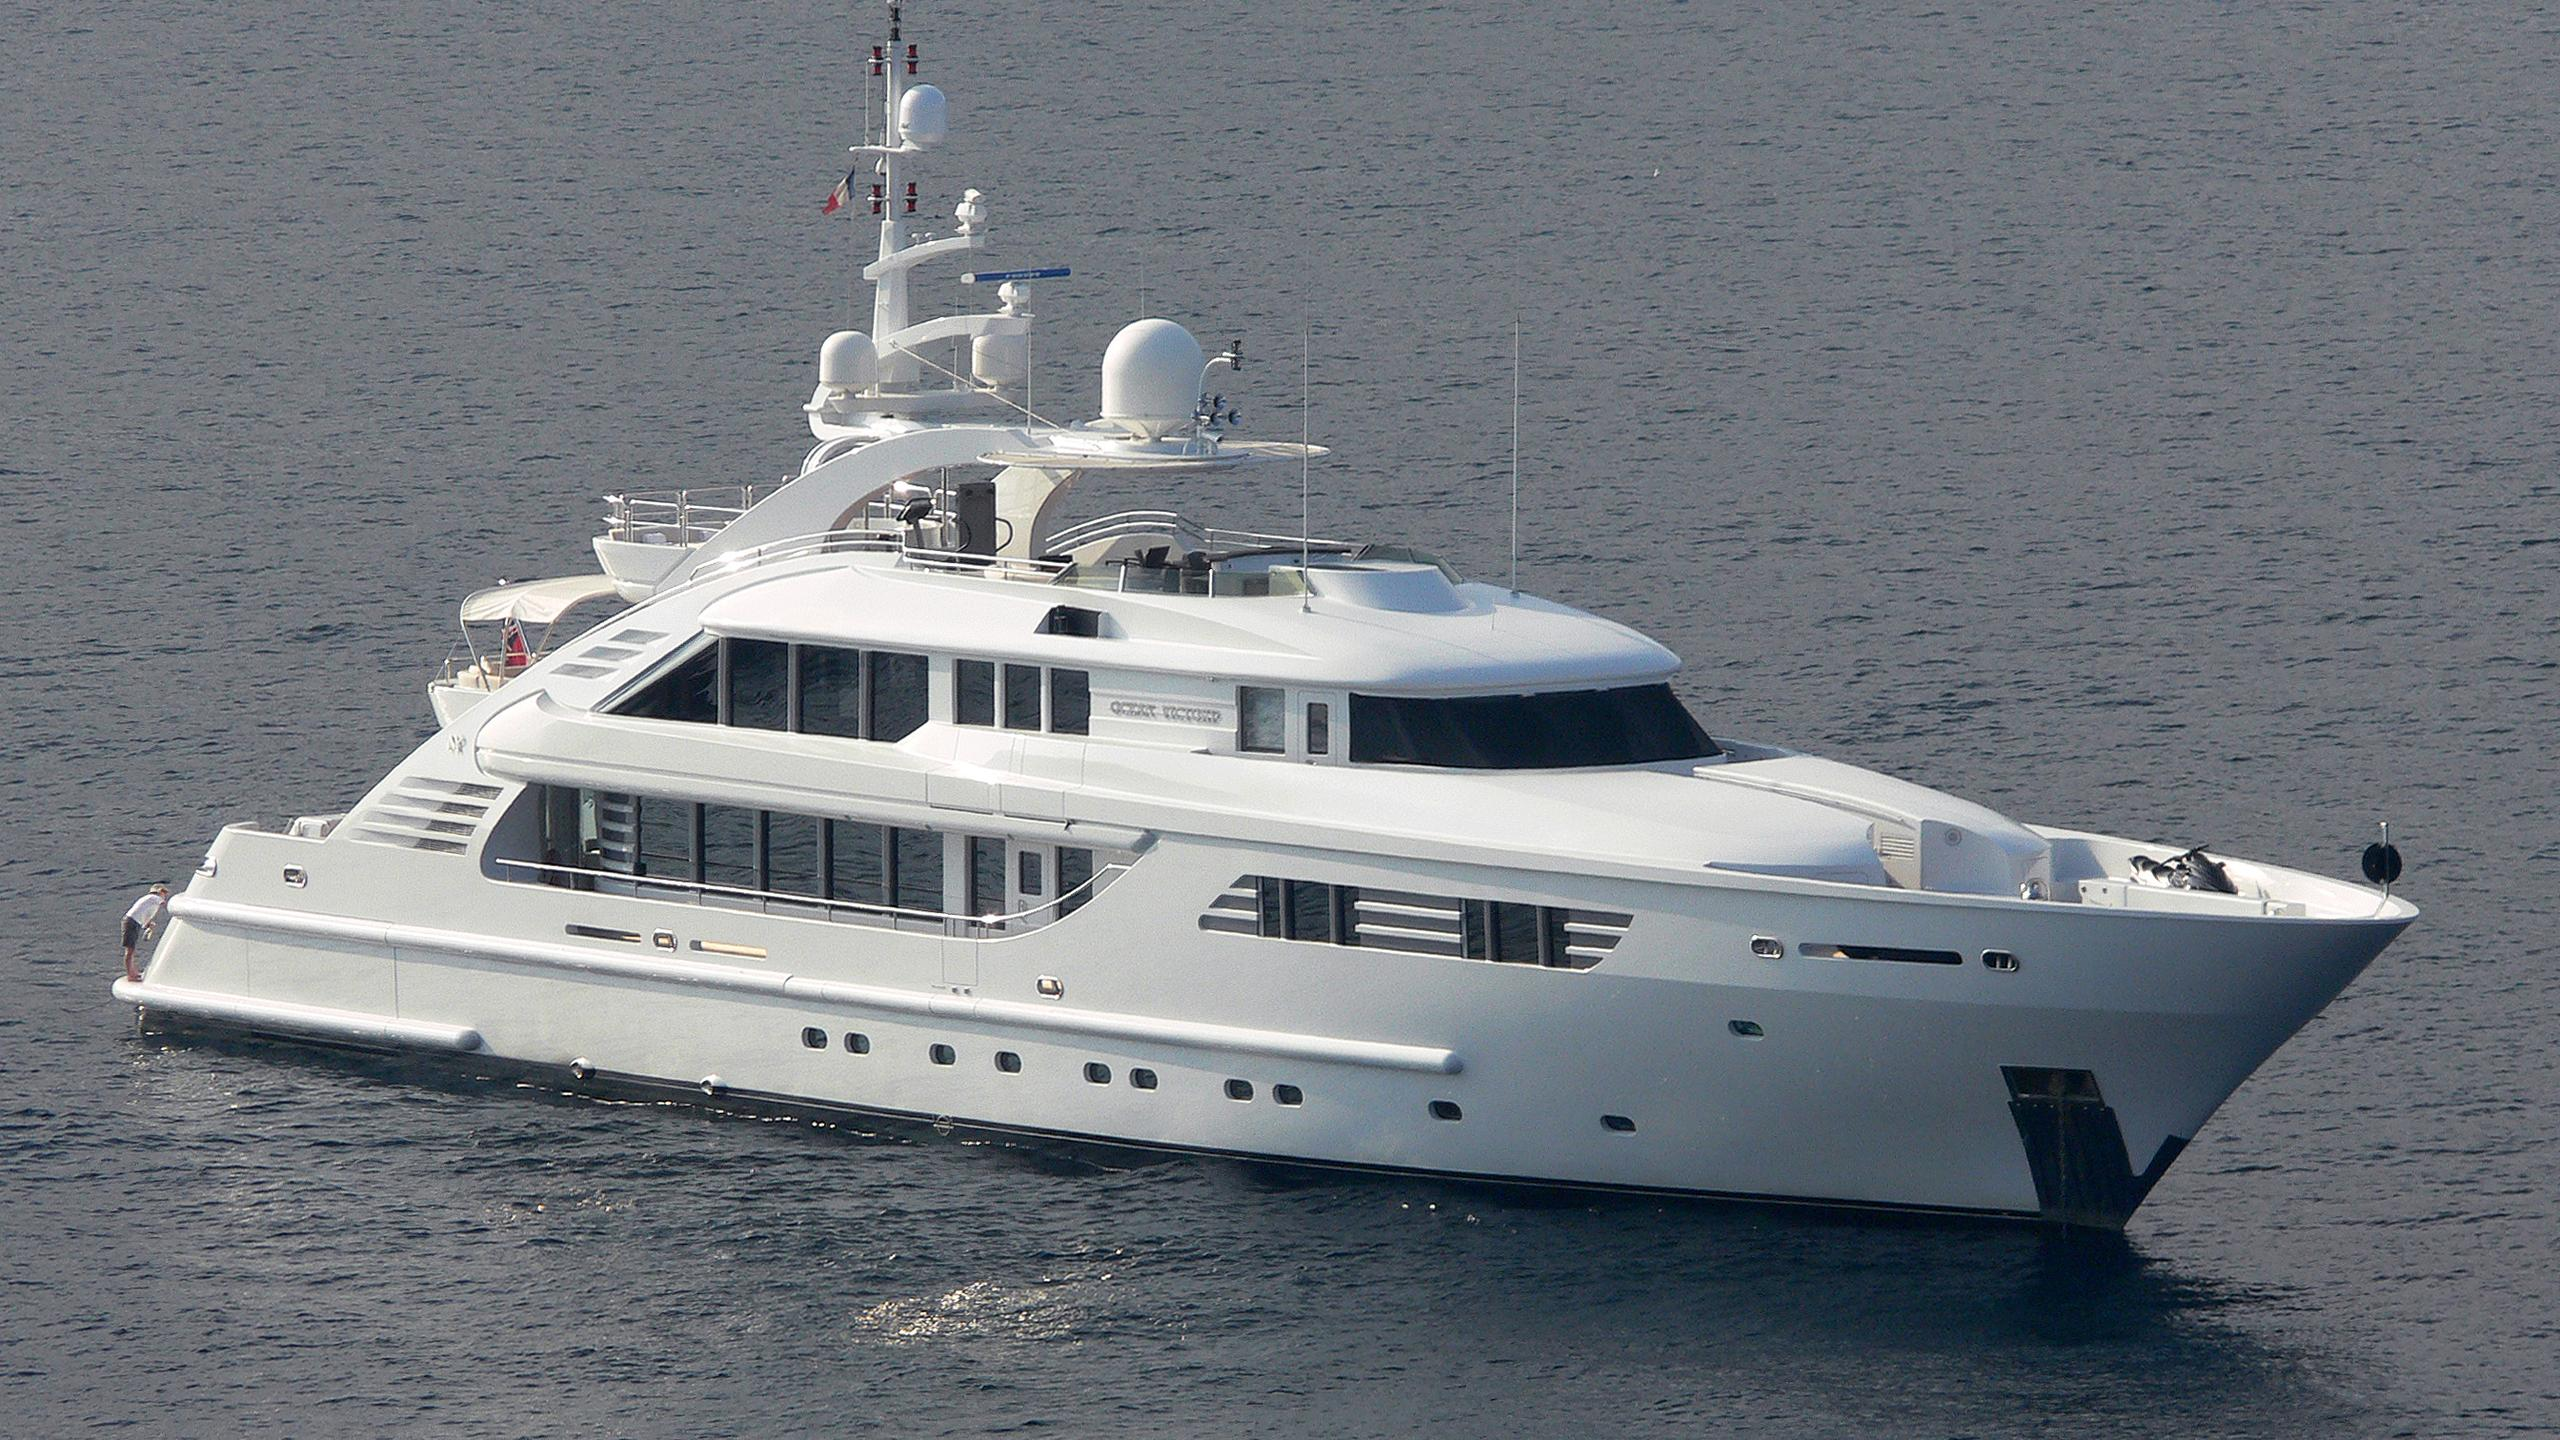 happy-days-motor-yacht-isa-470-2004-47m-half-profile